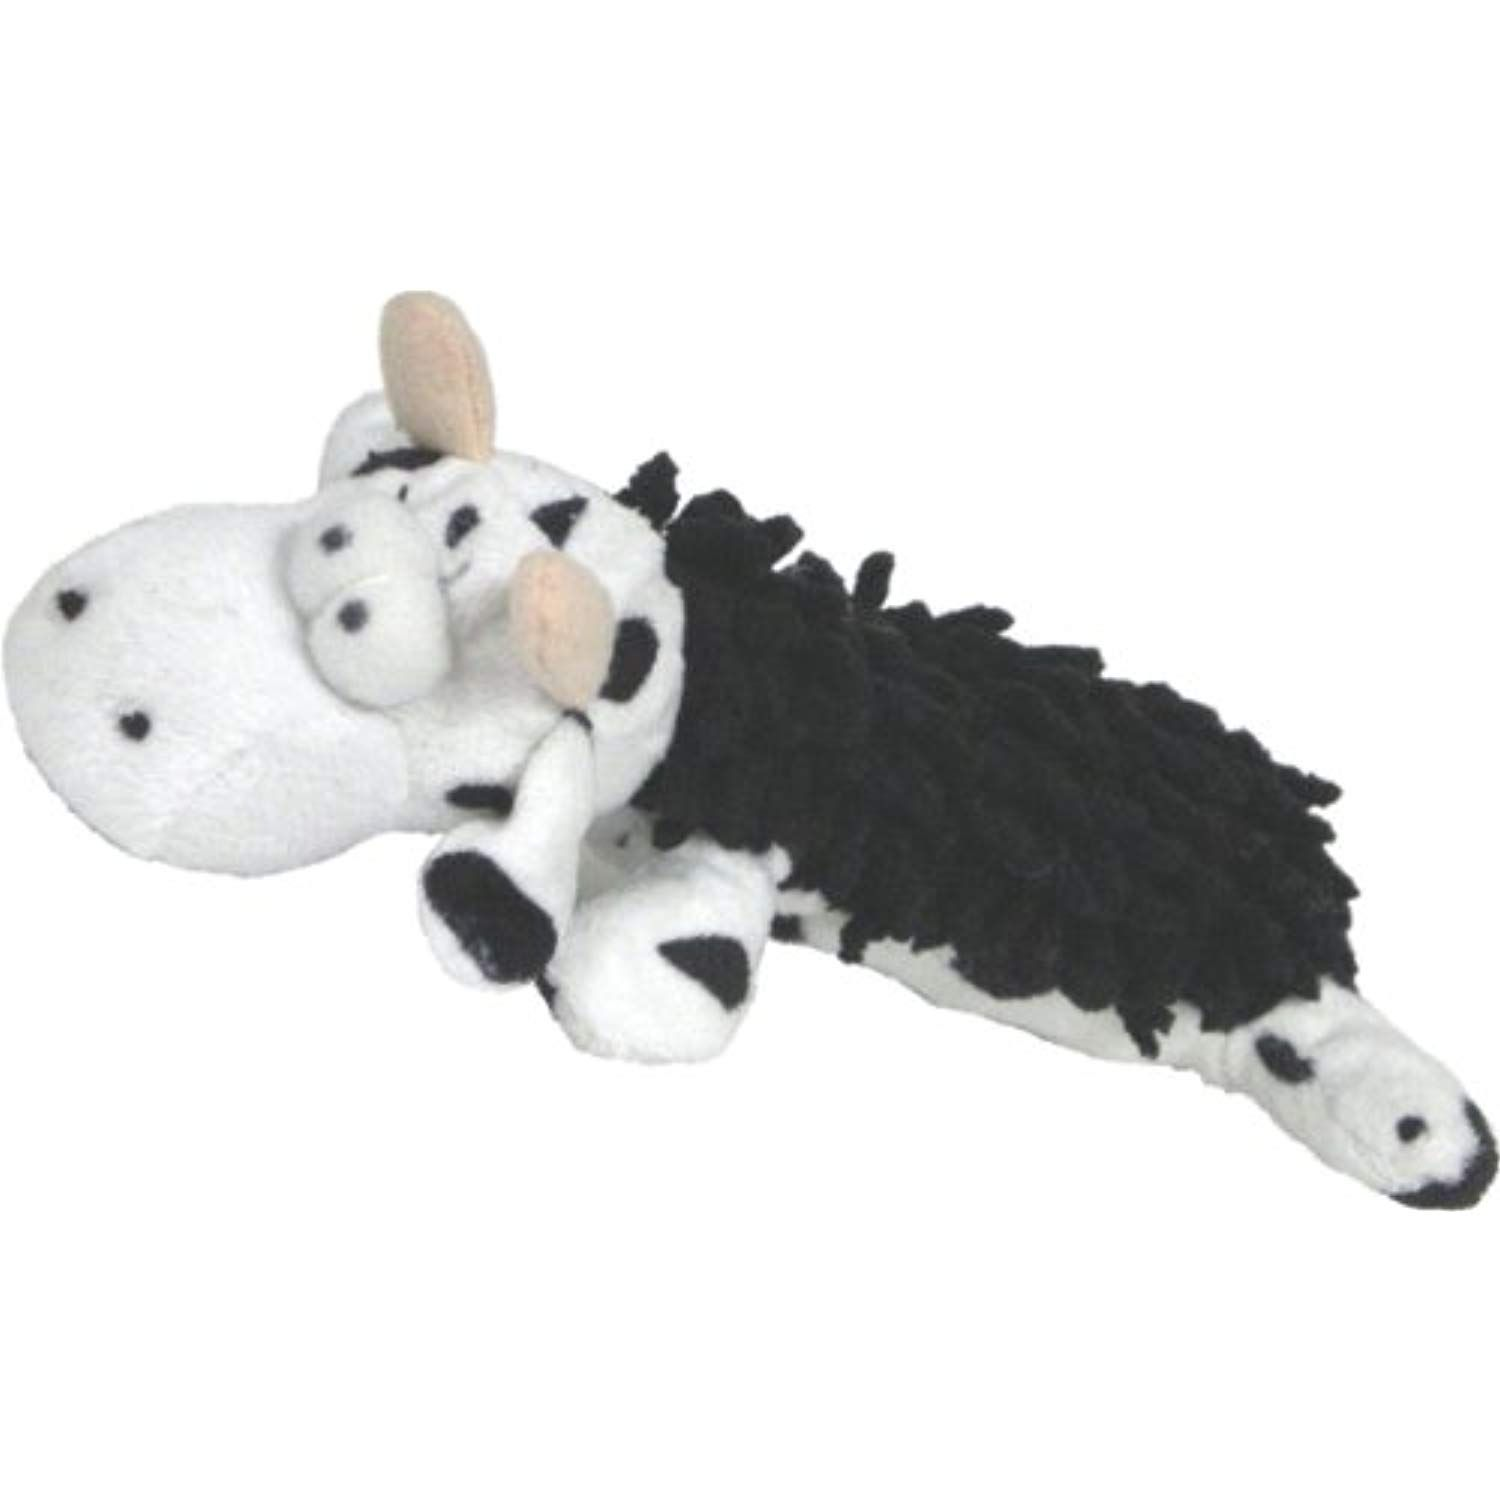 Amazing 10 Inch Plush Shaggy Cow Dog Toy Check Out The Image